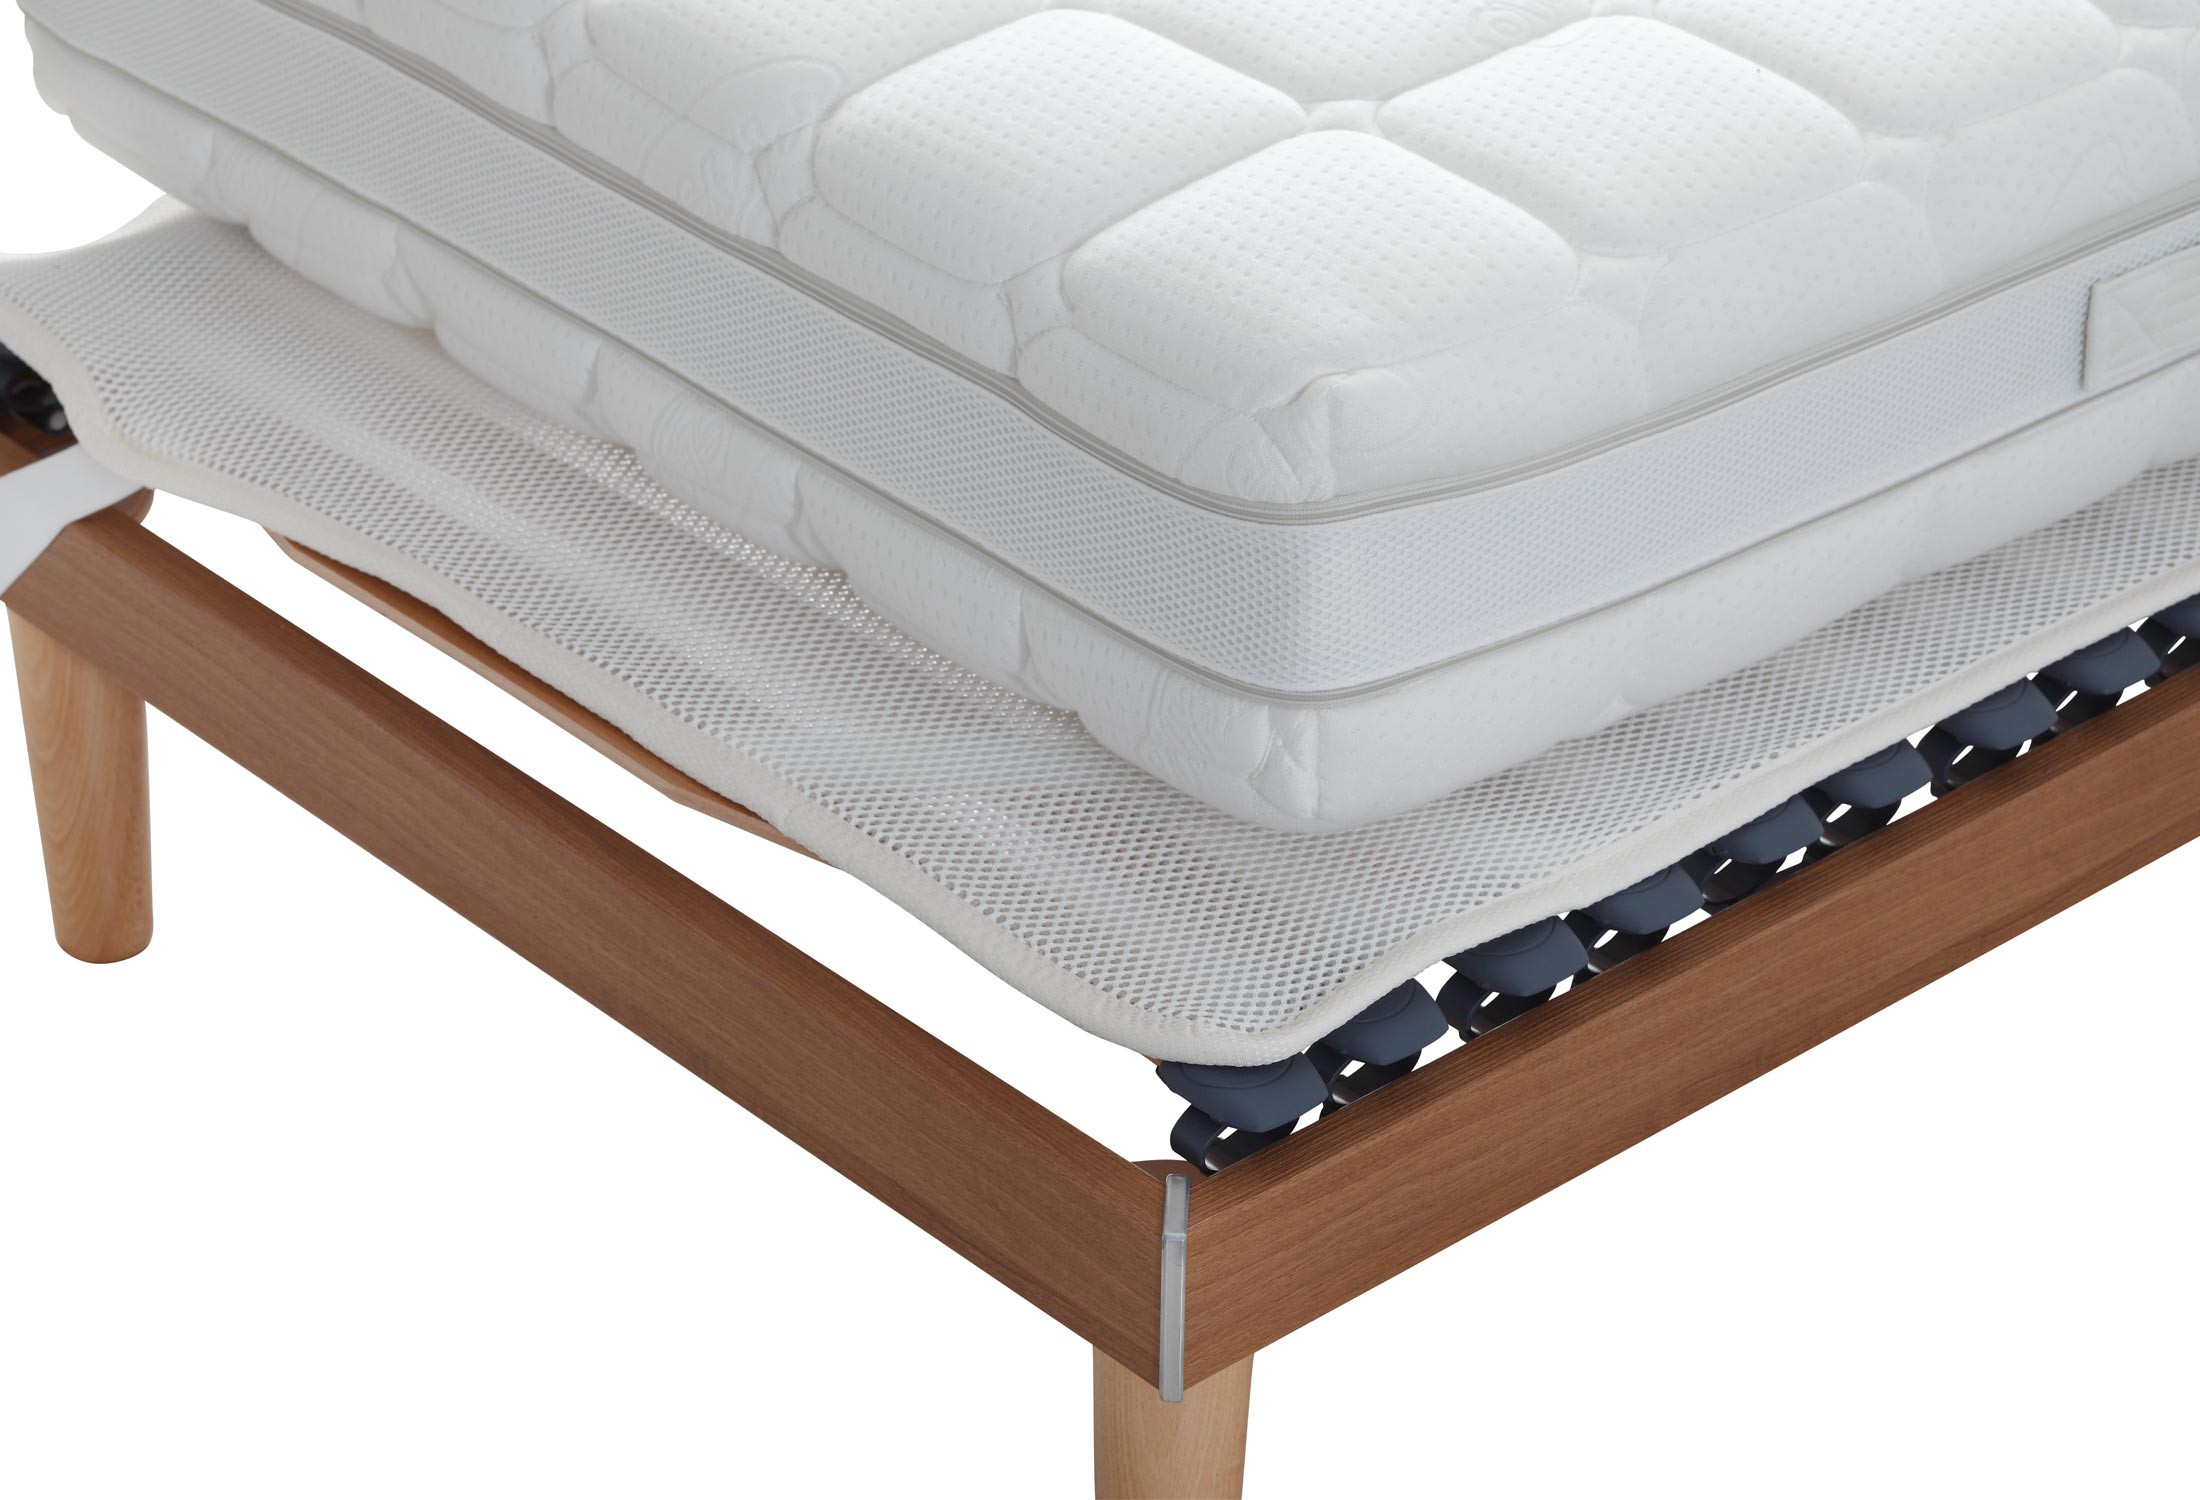 bed products sizes blissful m in linen adjustable nights base hipbeds beds futon multiple brown futons